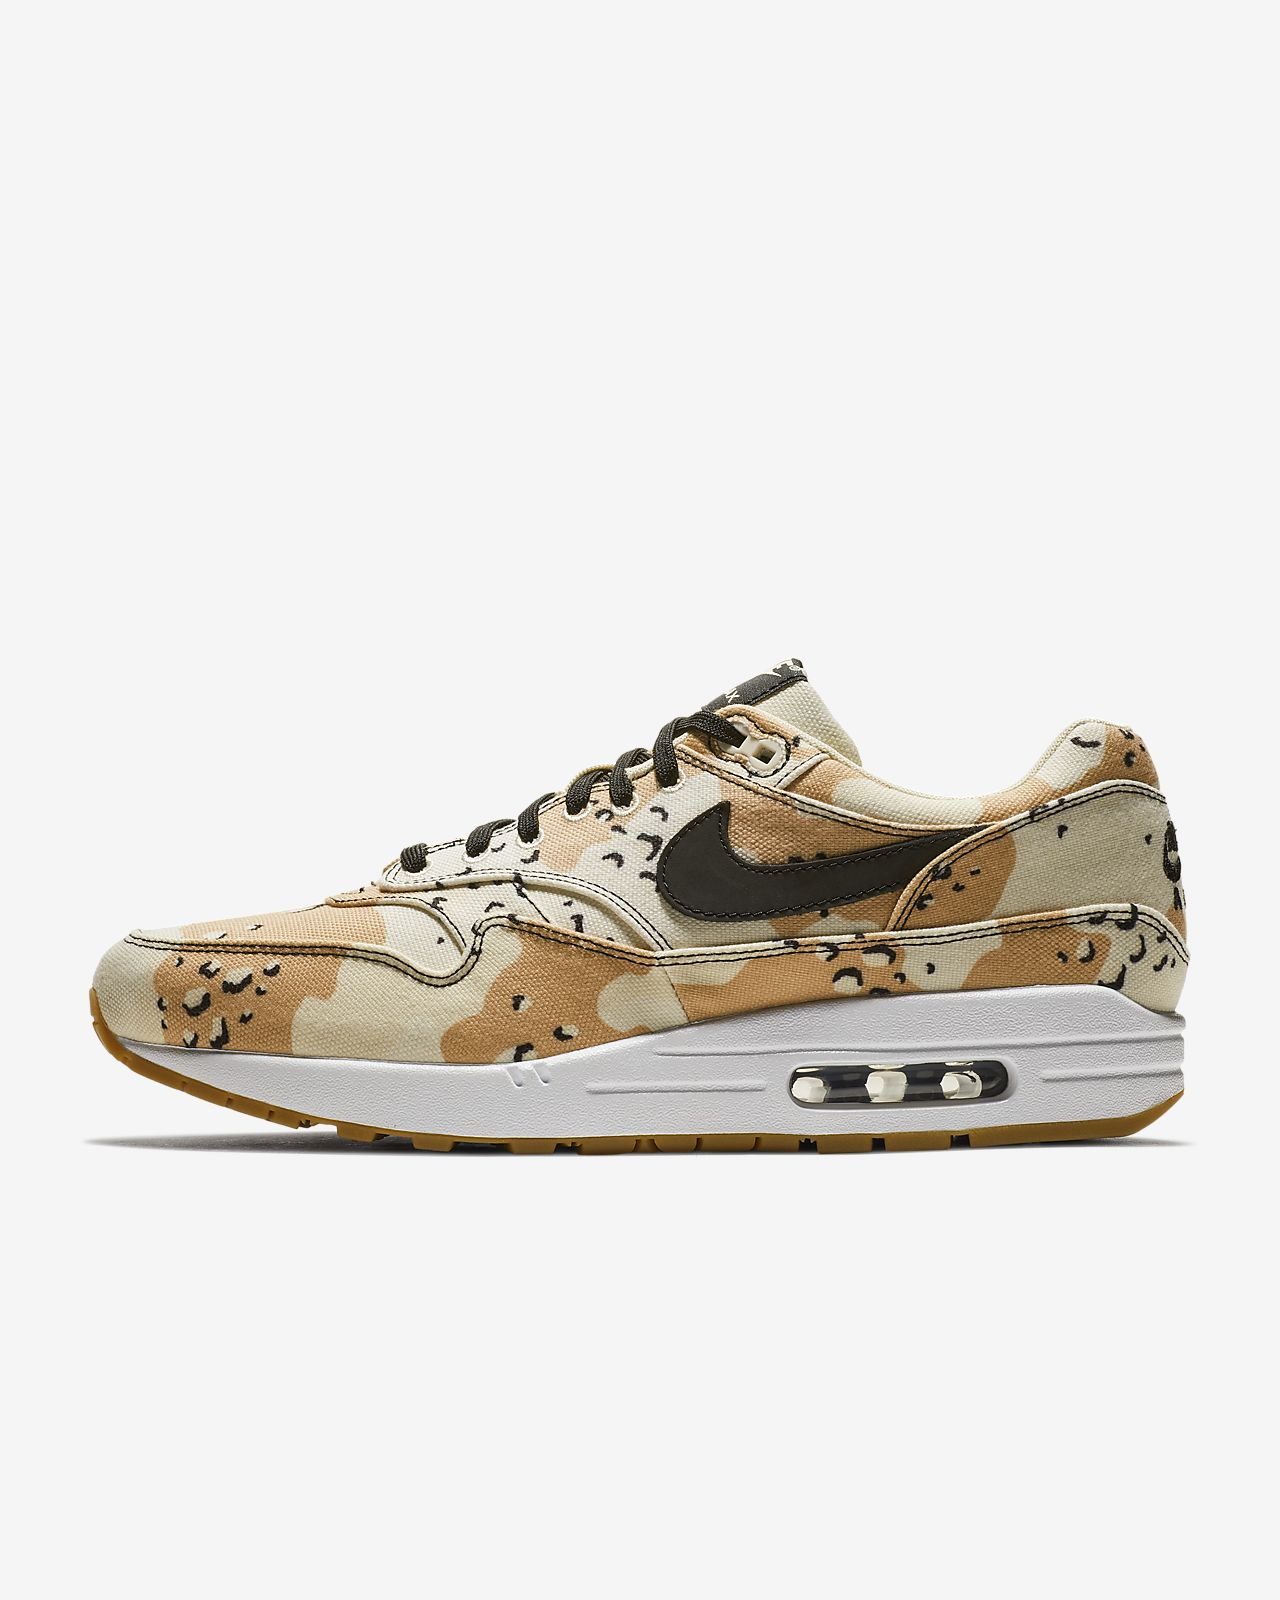 cheap for discount c32be 74c39 ... Chaussure Nike Air Max 1 Premium pour Homme